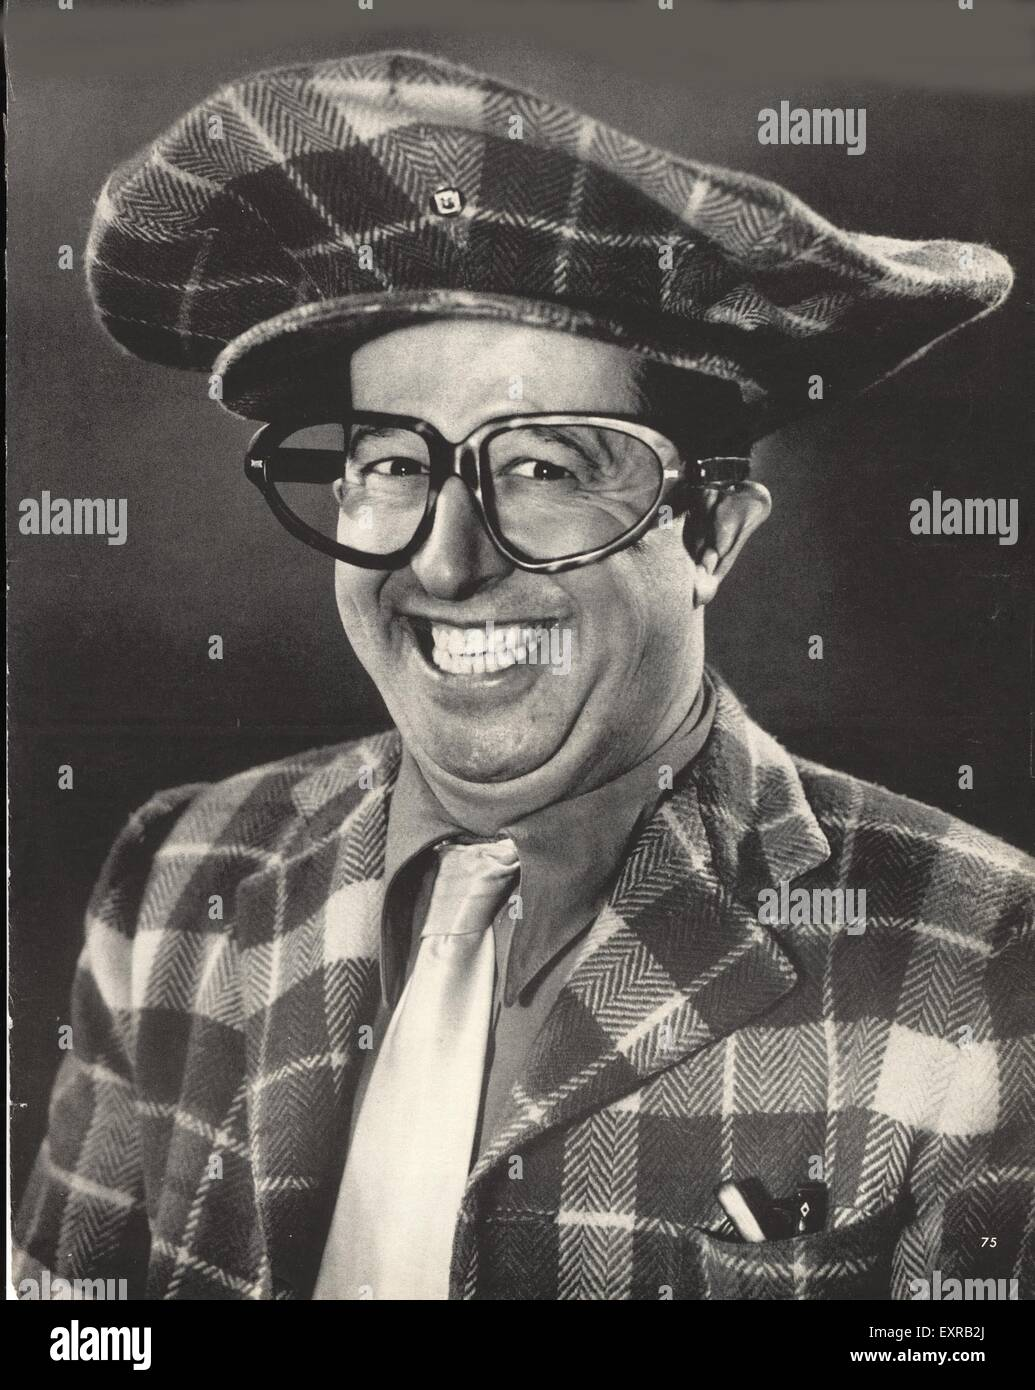 1950s USA Phil Silvers Magazine Plate - Stock Image